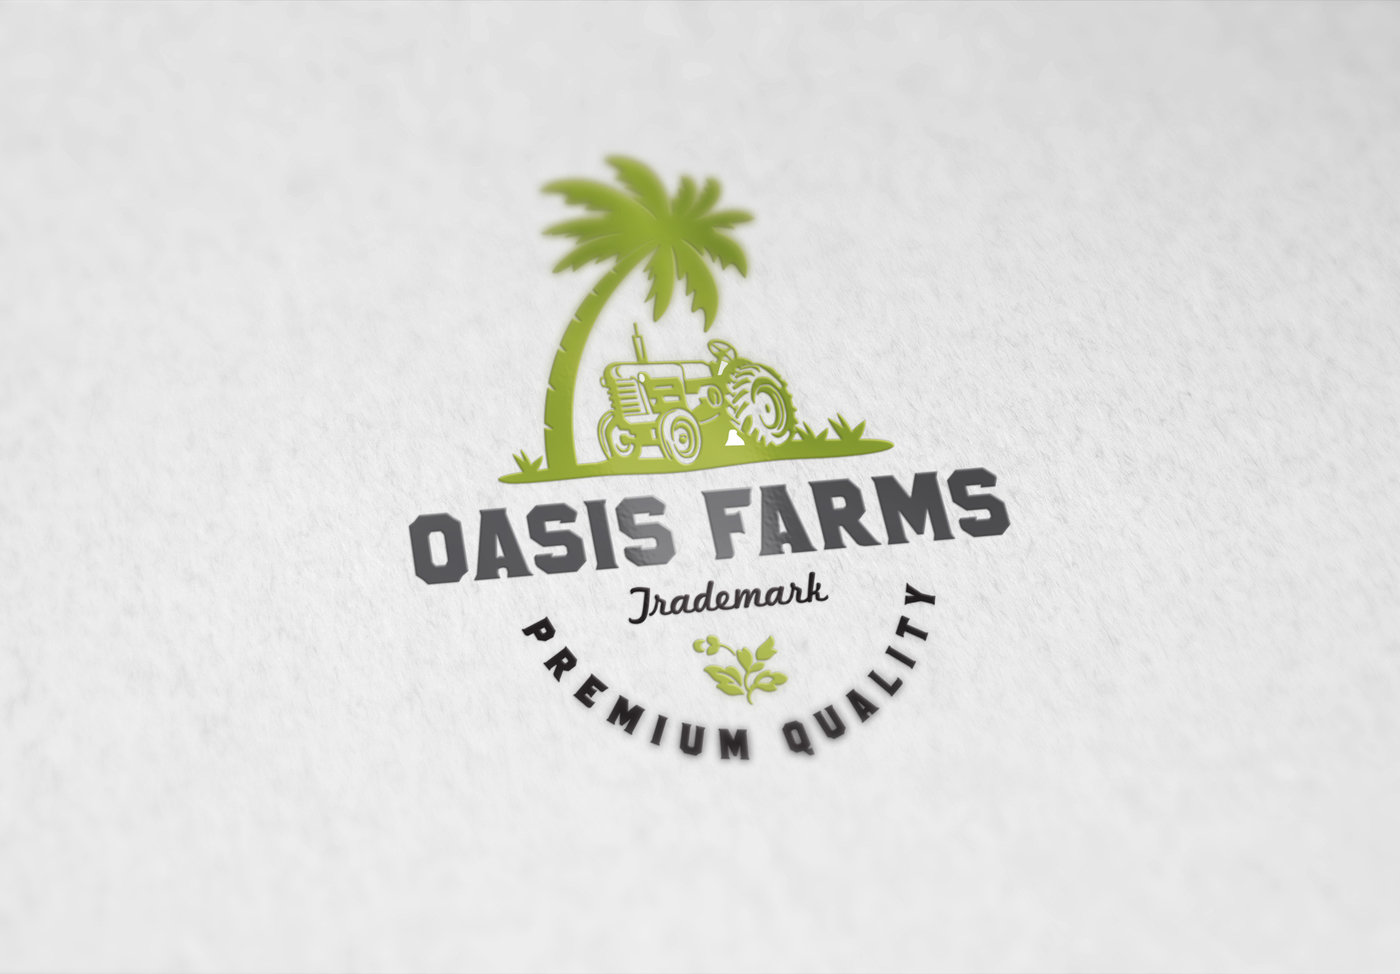 Oasis Farms by Dale McLam ( Freelance ) at Coroflot.com